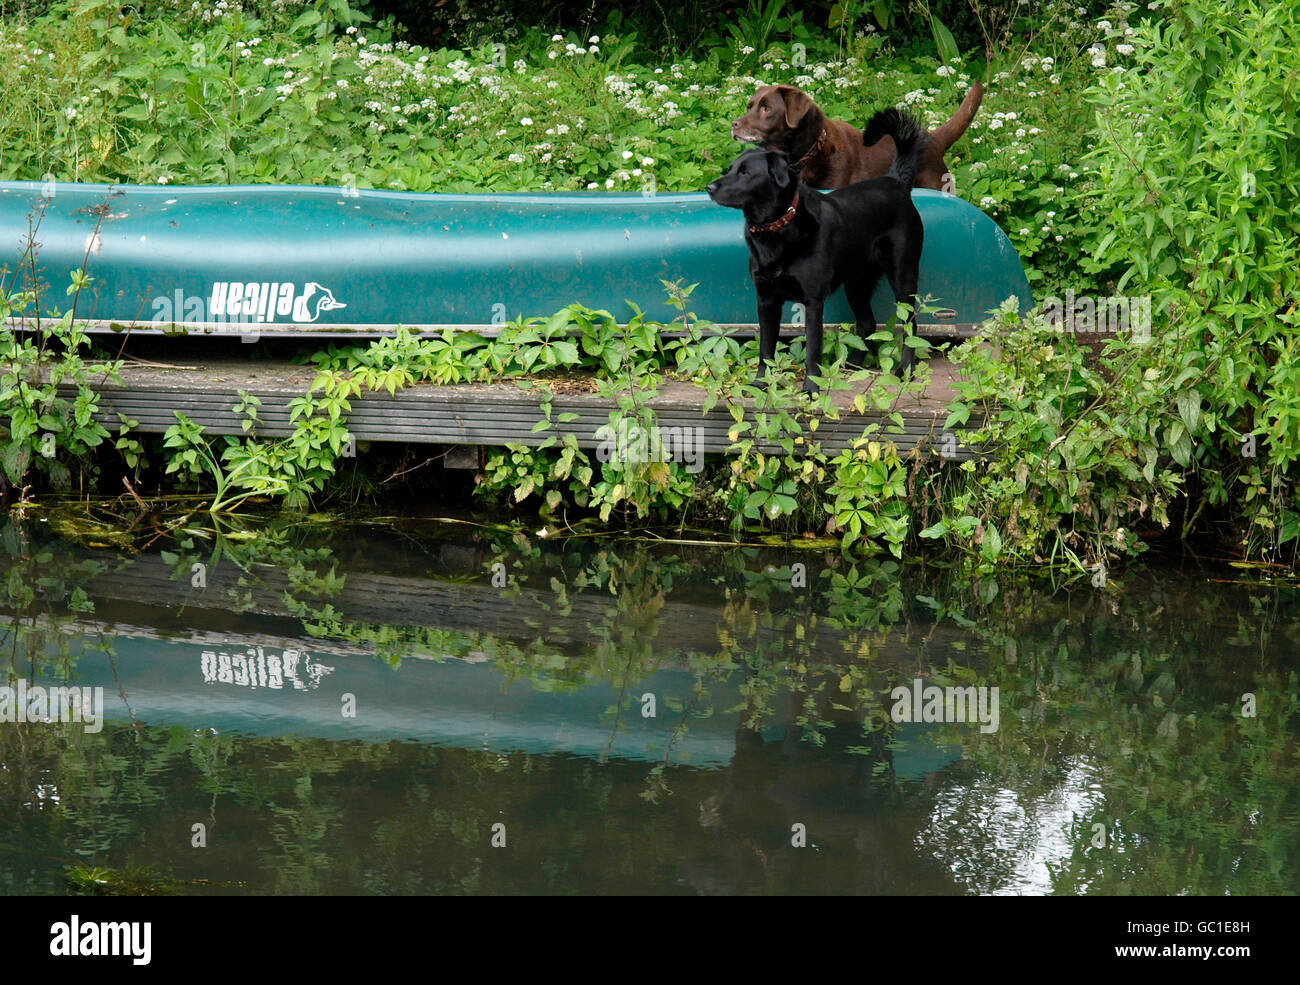 Two dogs standing on a jetty along the Great Western Canal, Devon, UK - Stock Image